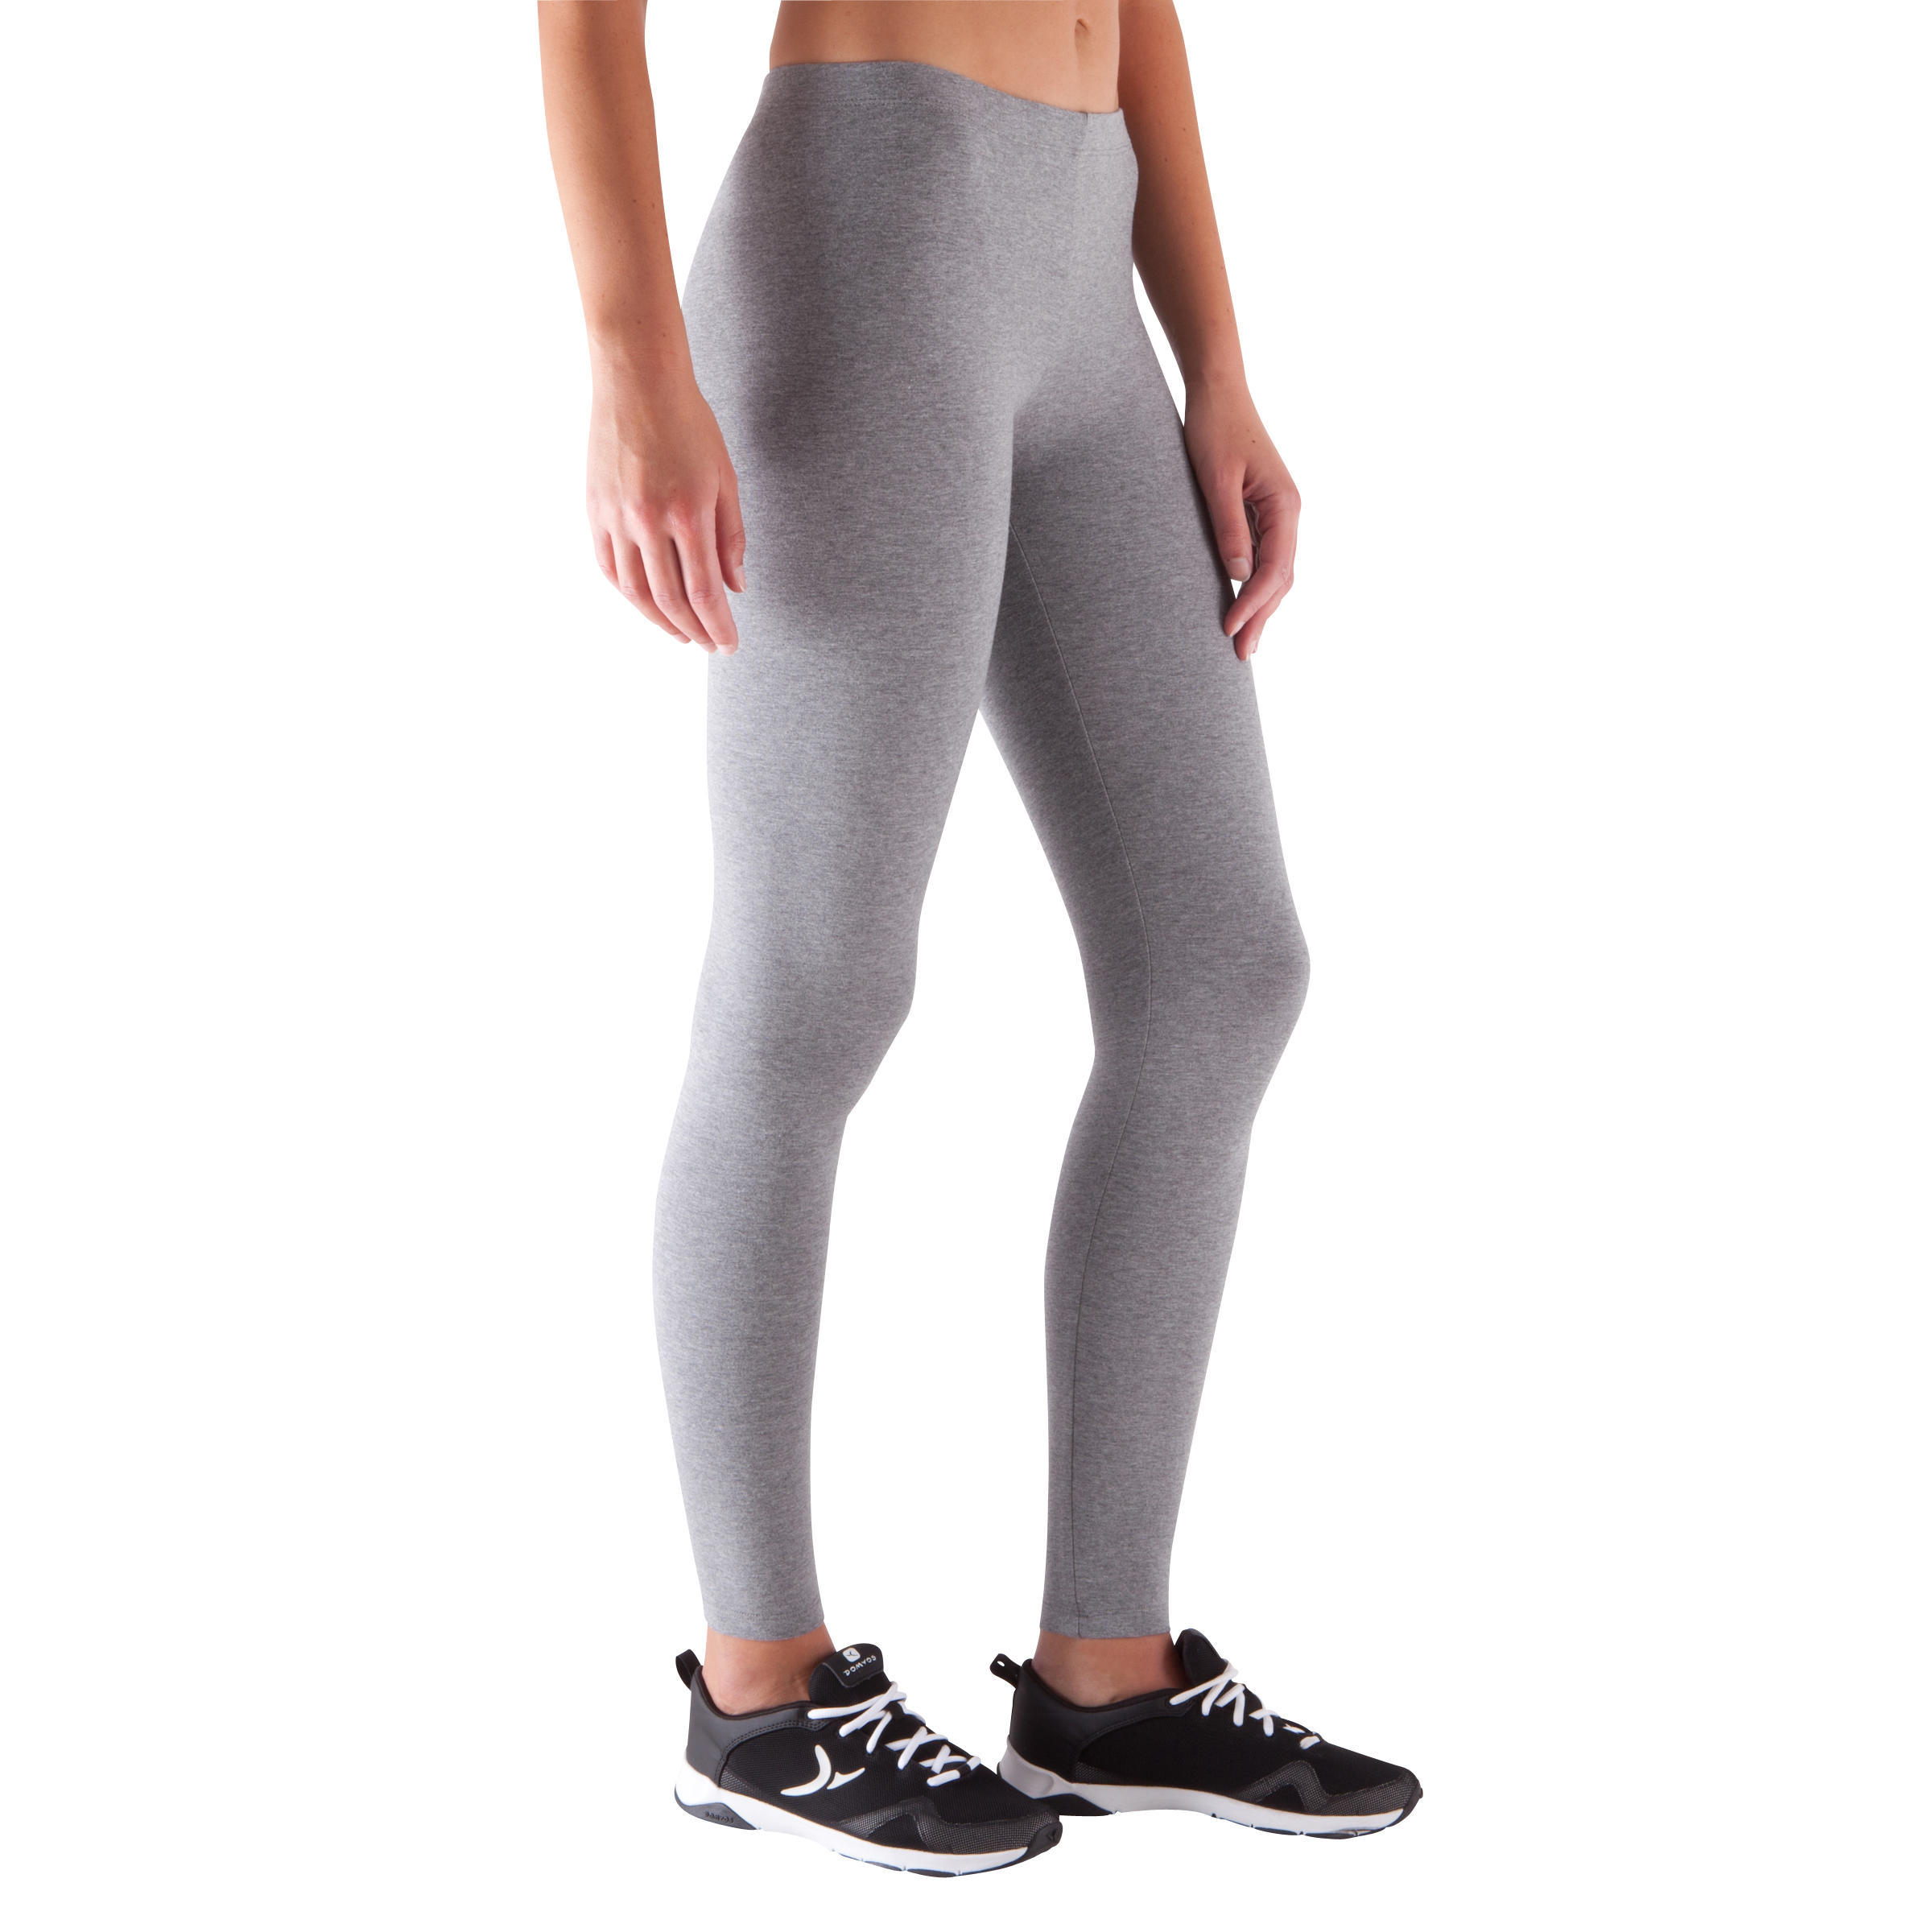 Salto Women's Slim-Fit Fitness Leggings - Mottled Grey